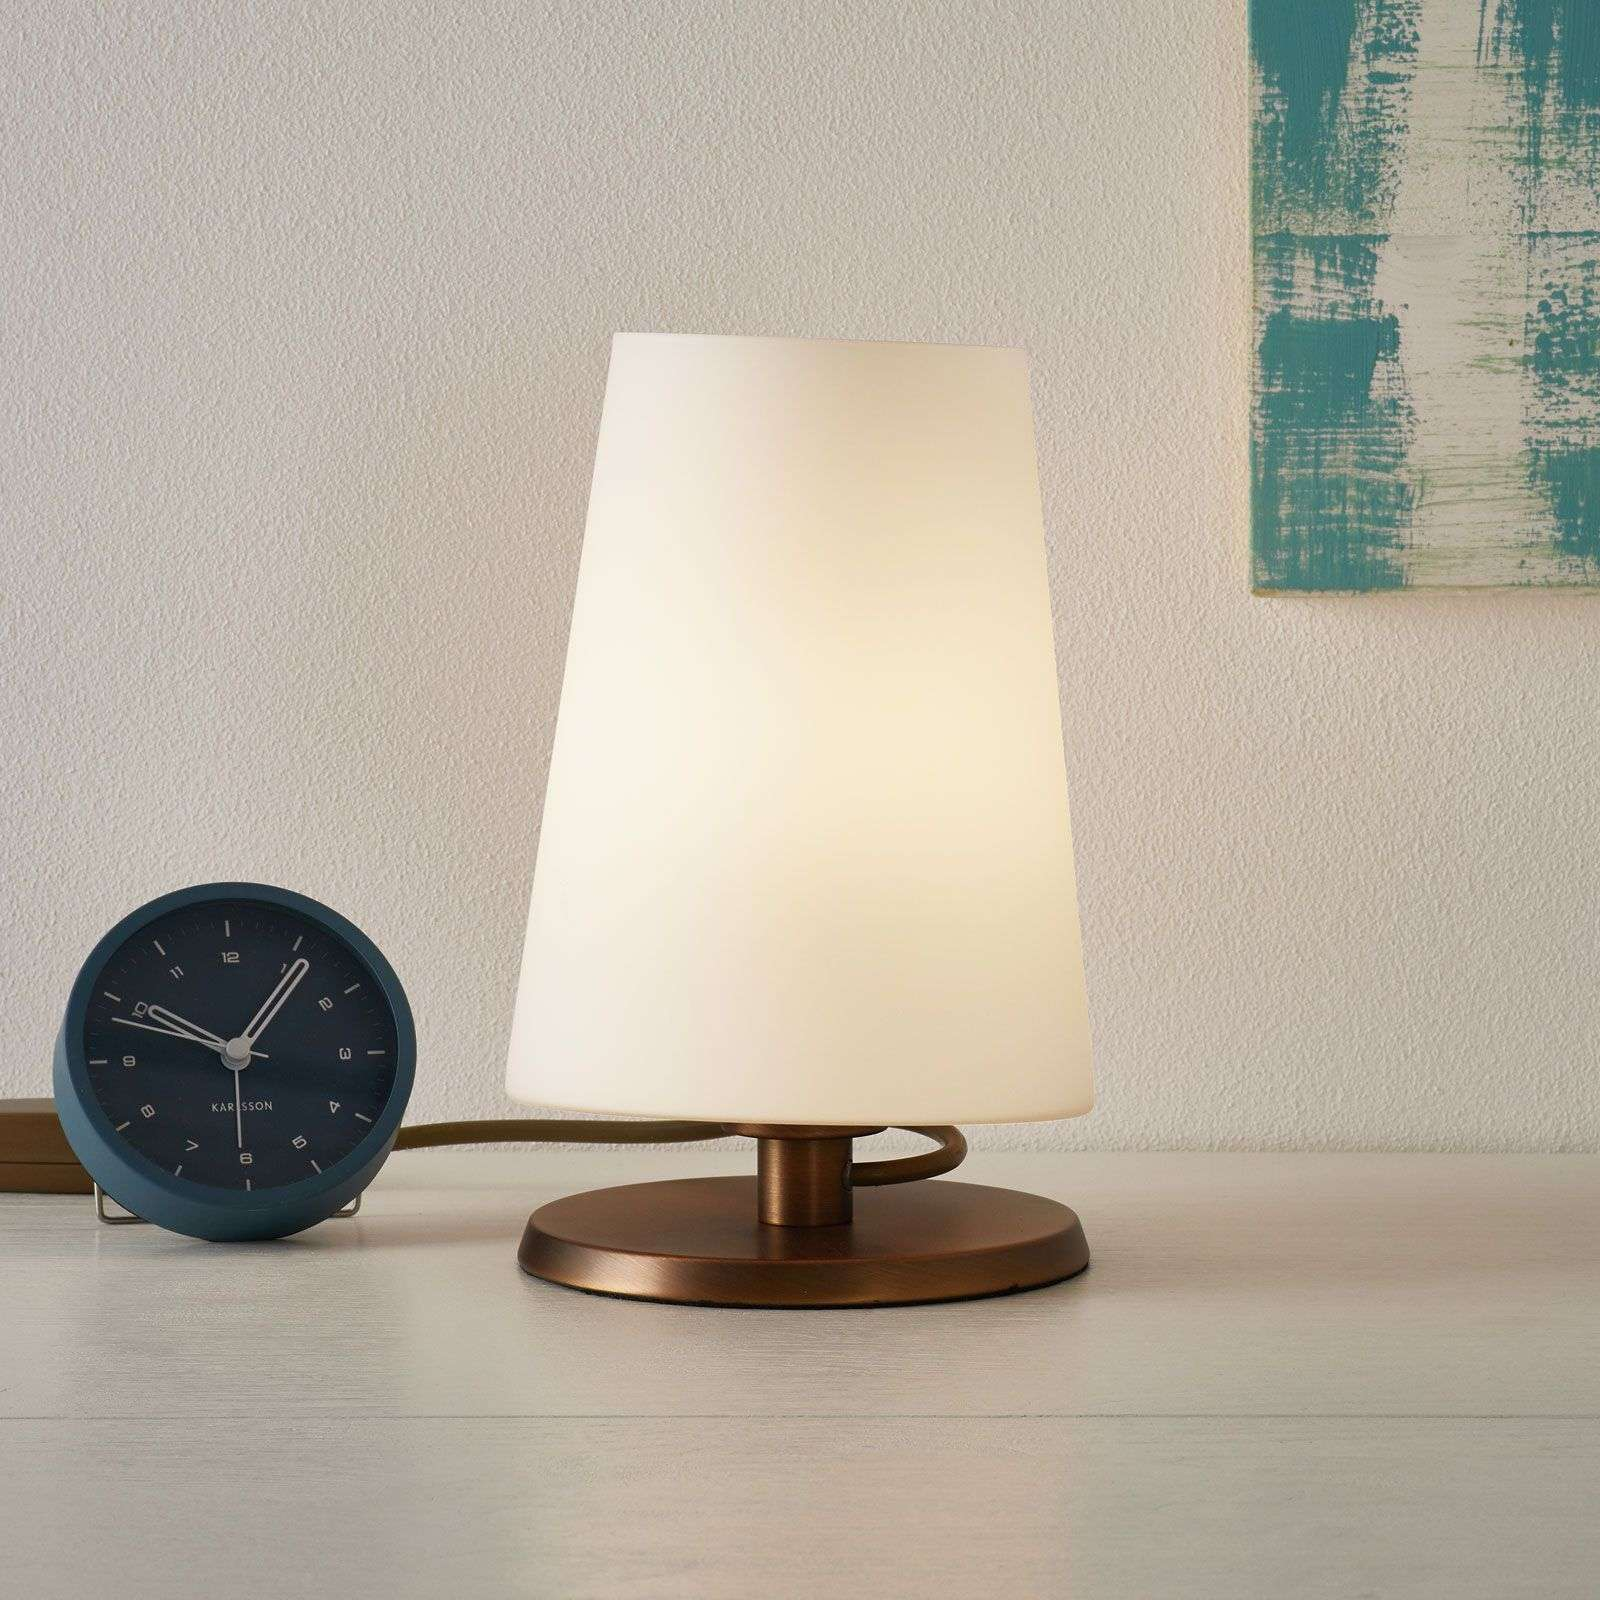 Ancilla - table lamp with bronze touch dimmer